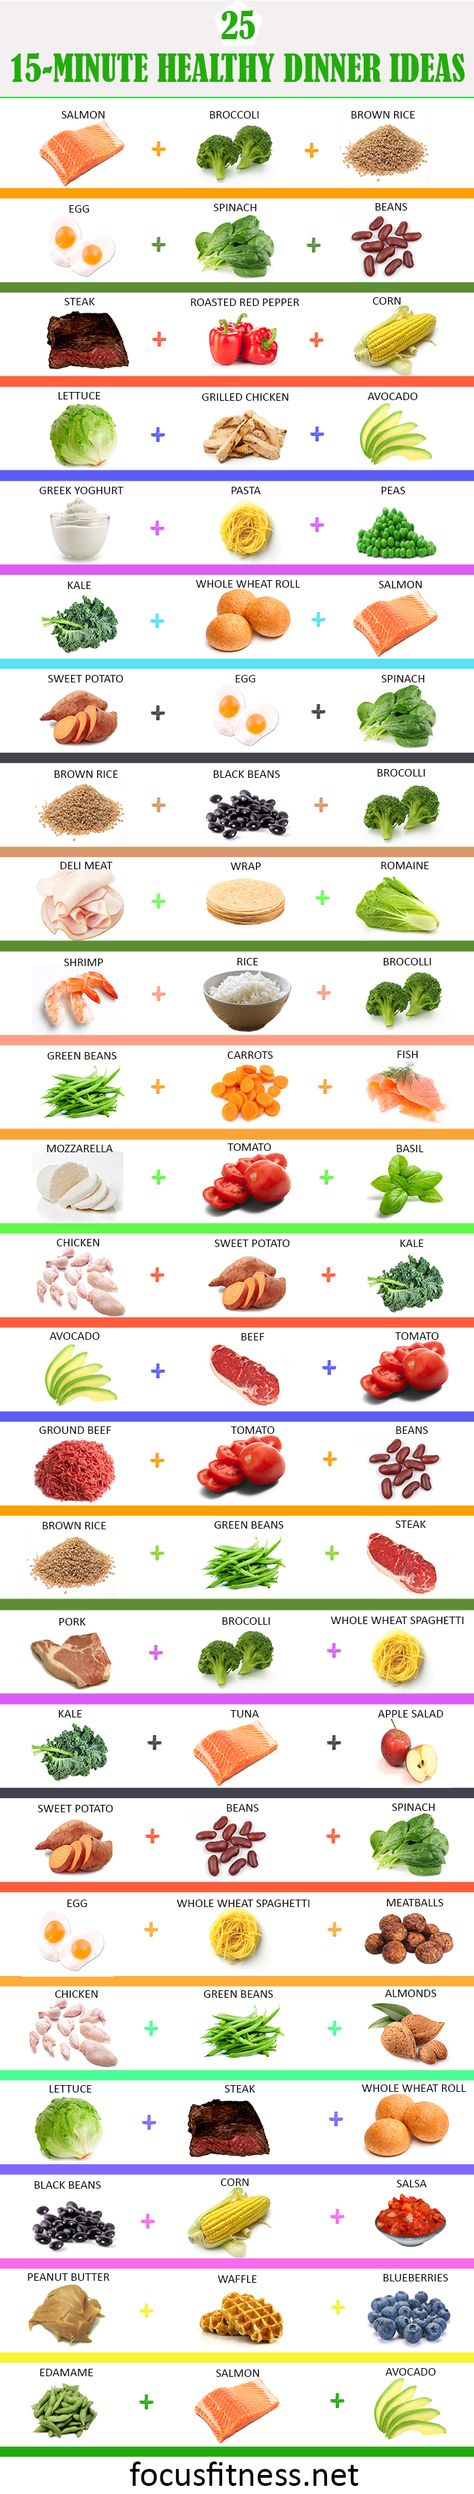 25 Healthy Dinner Ideas for Weight Loss That Take Less Than 15 Minutes to Make!